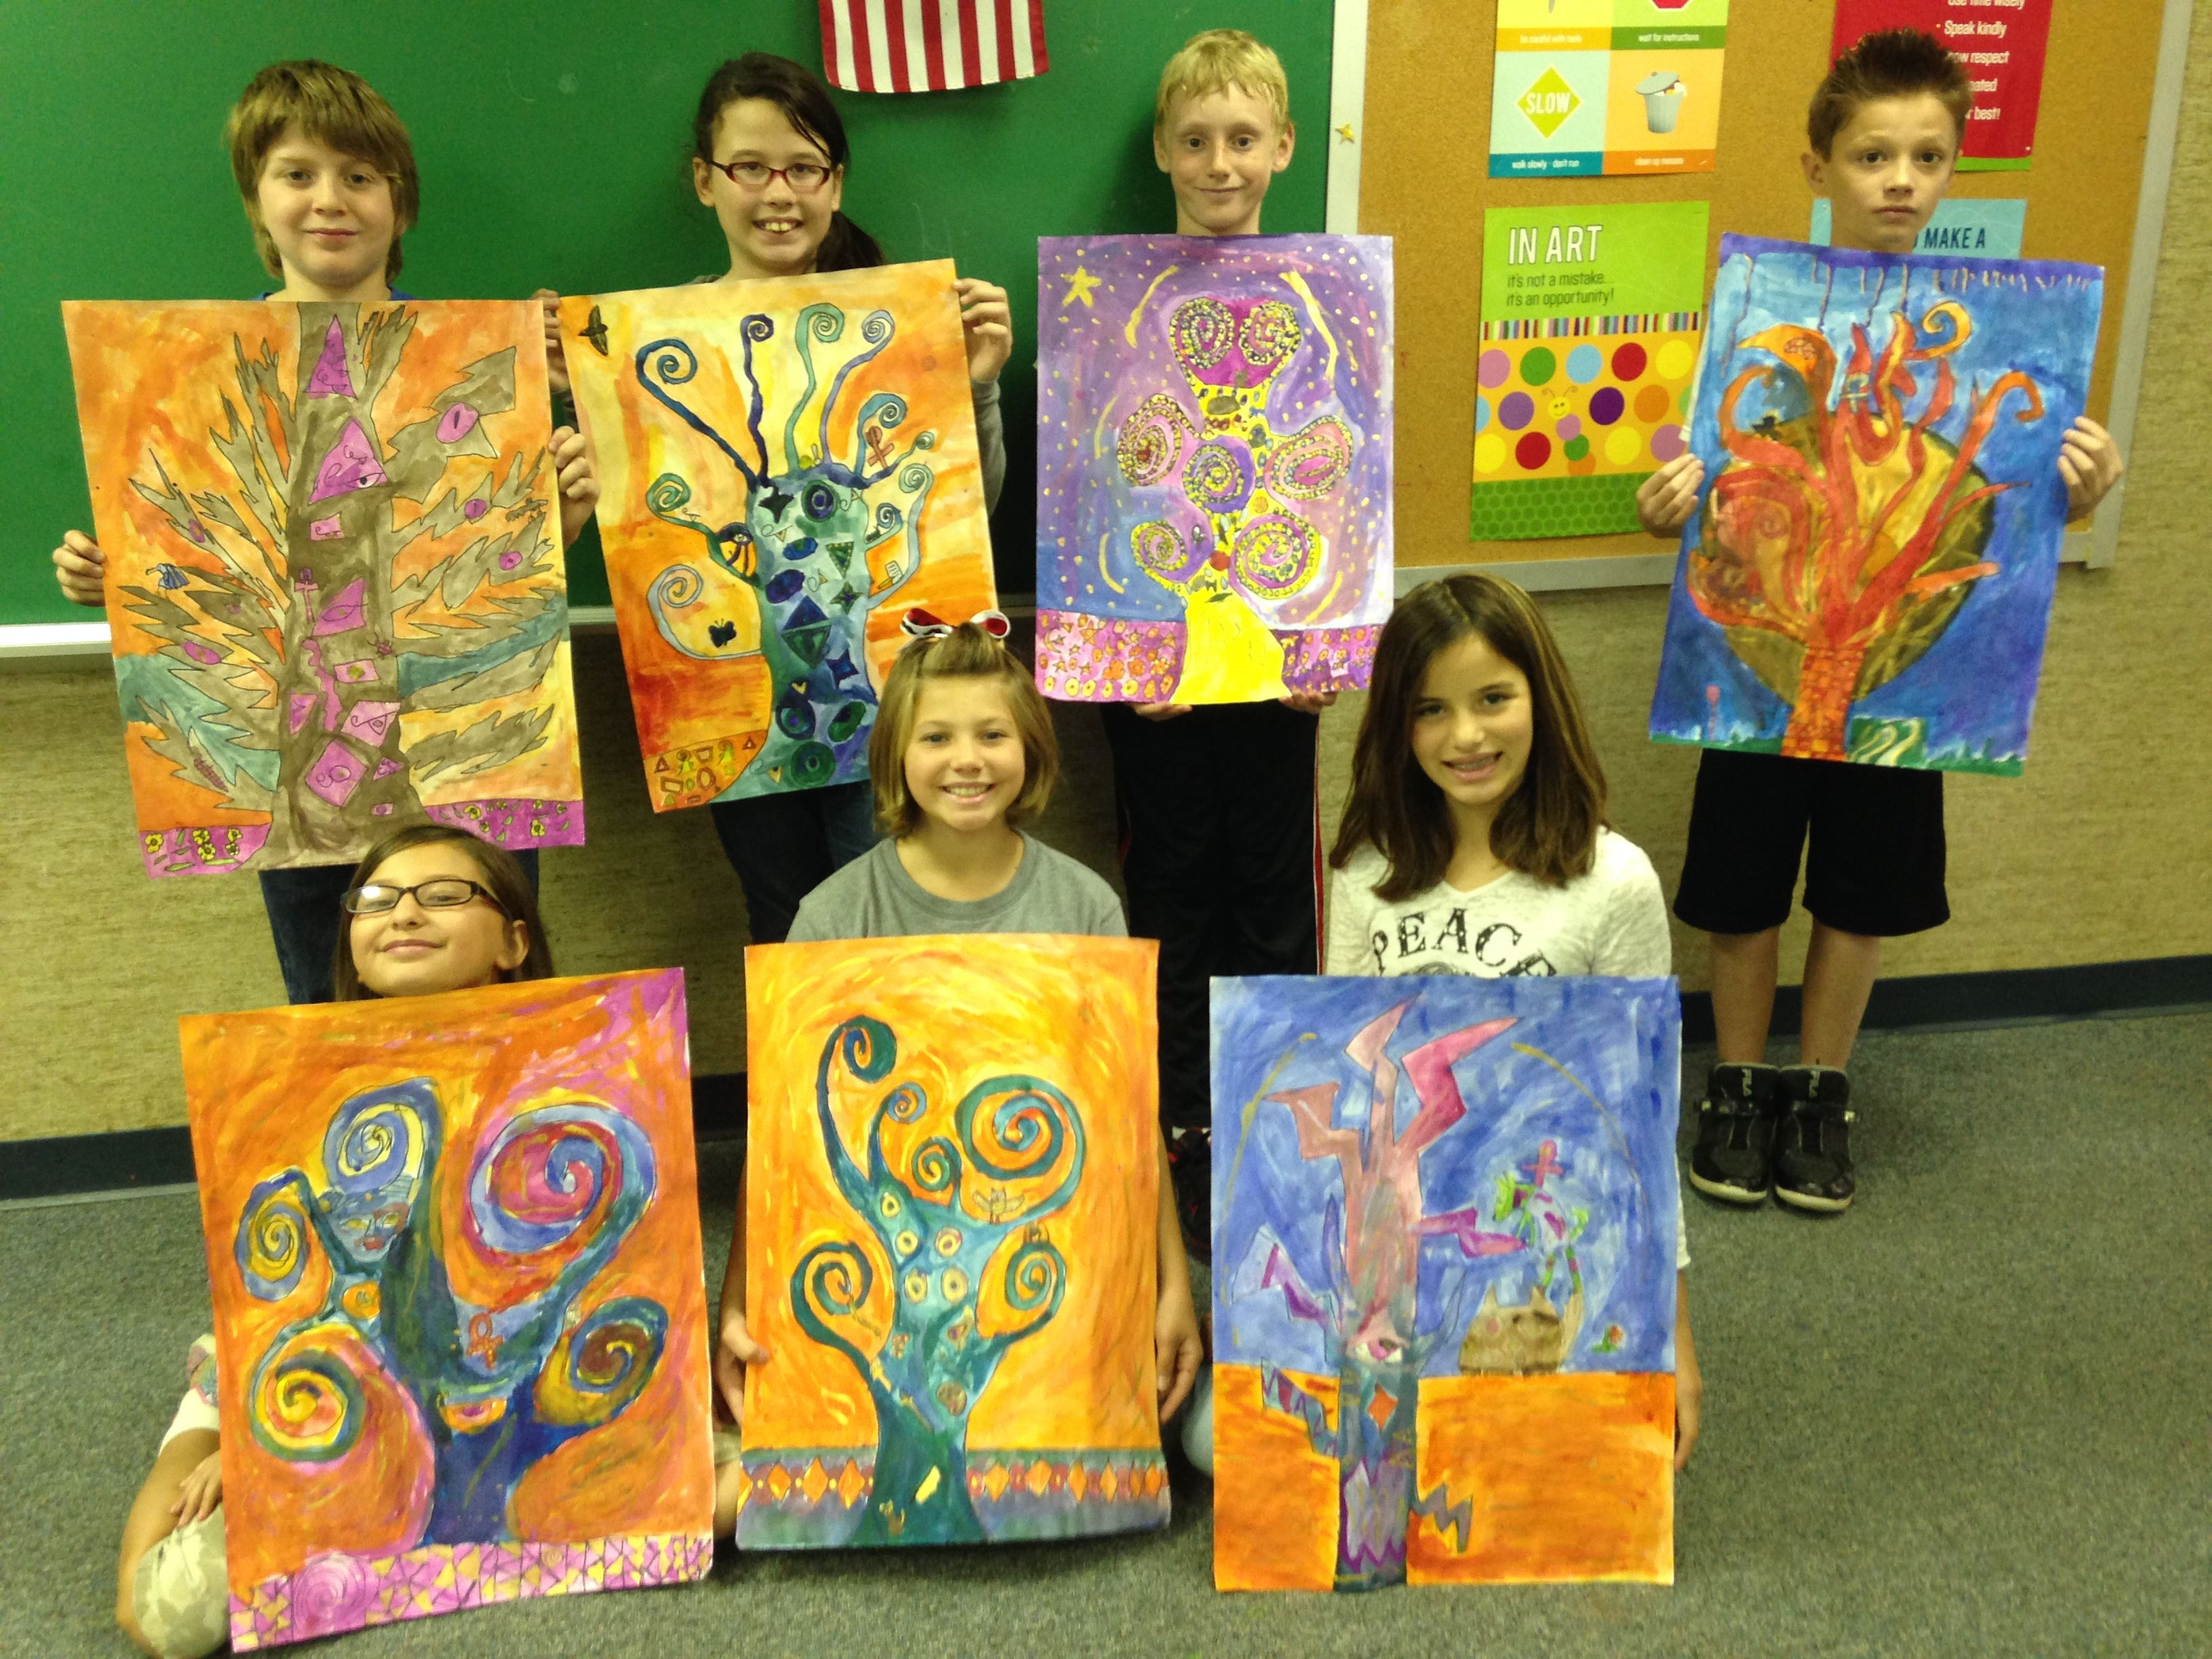 Klimt inspired artwork using egyptian symbolism and gold metallic klimt inspired artwork using egyptian symbolism and gold metallic watercolor students also added their biocorpaavc Image collections